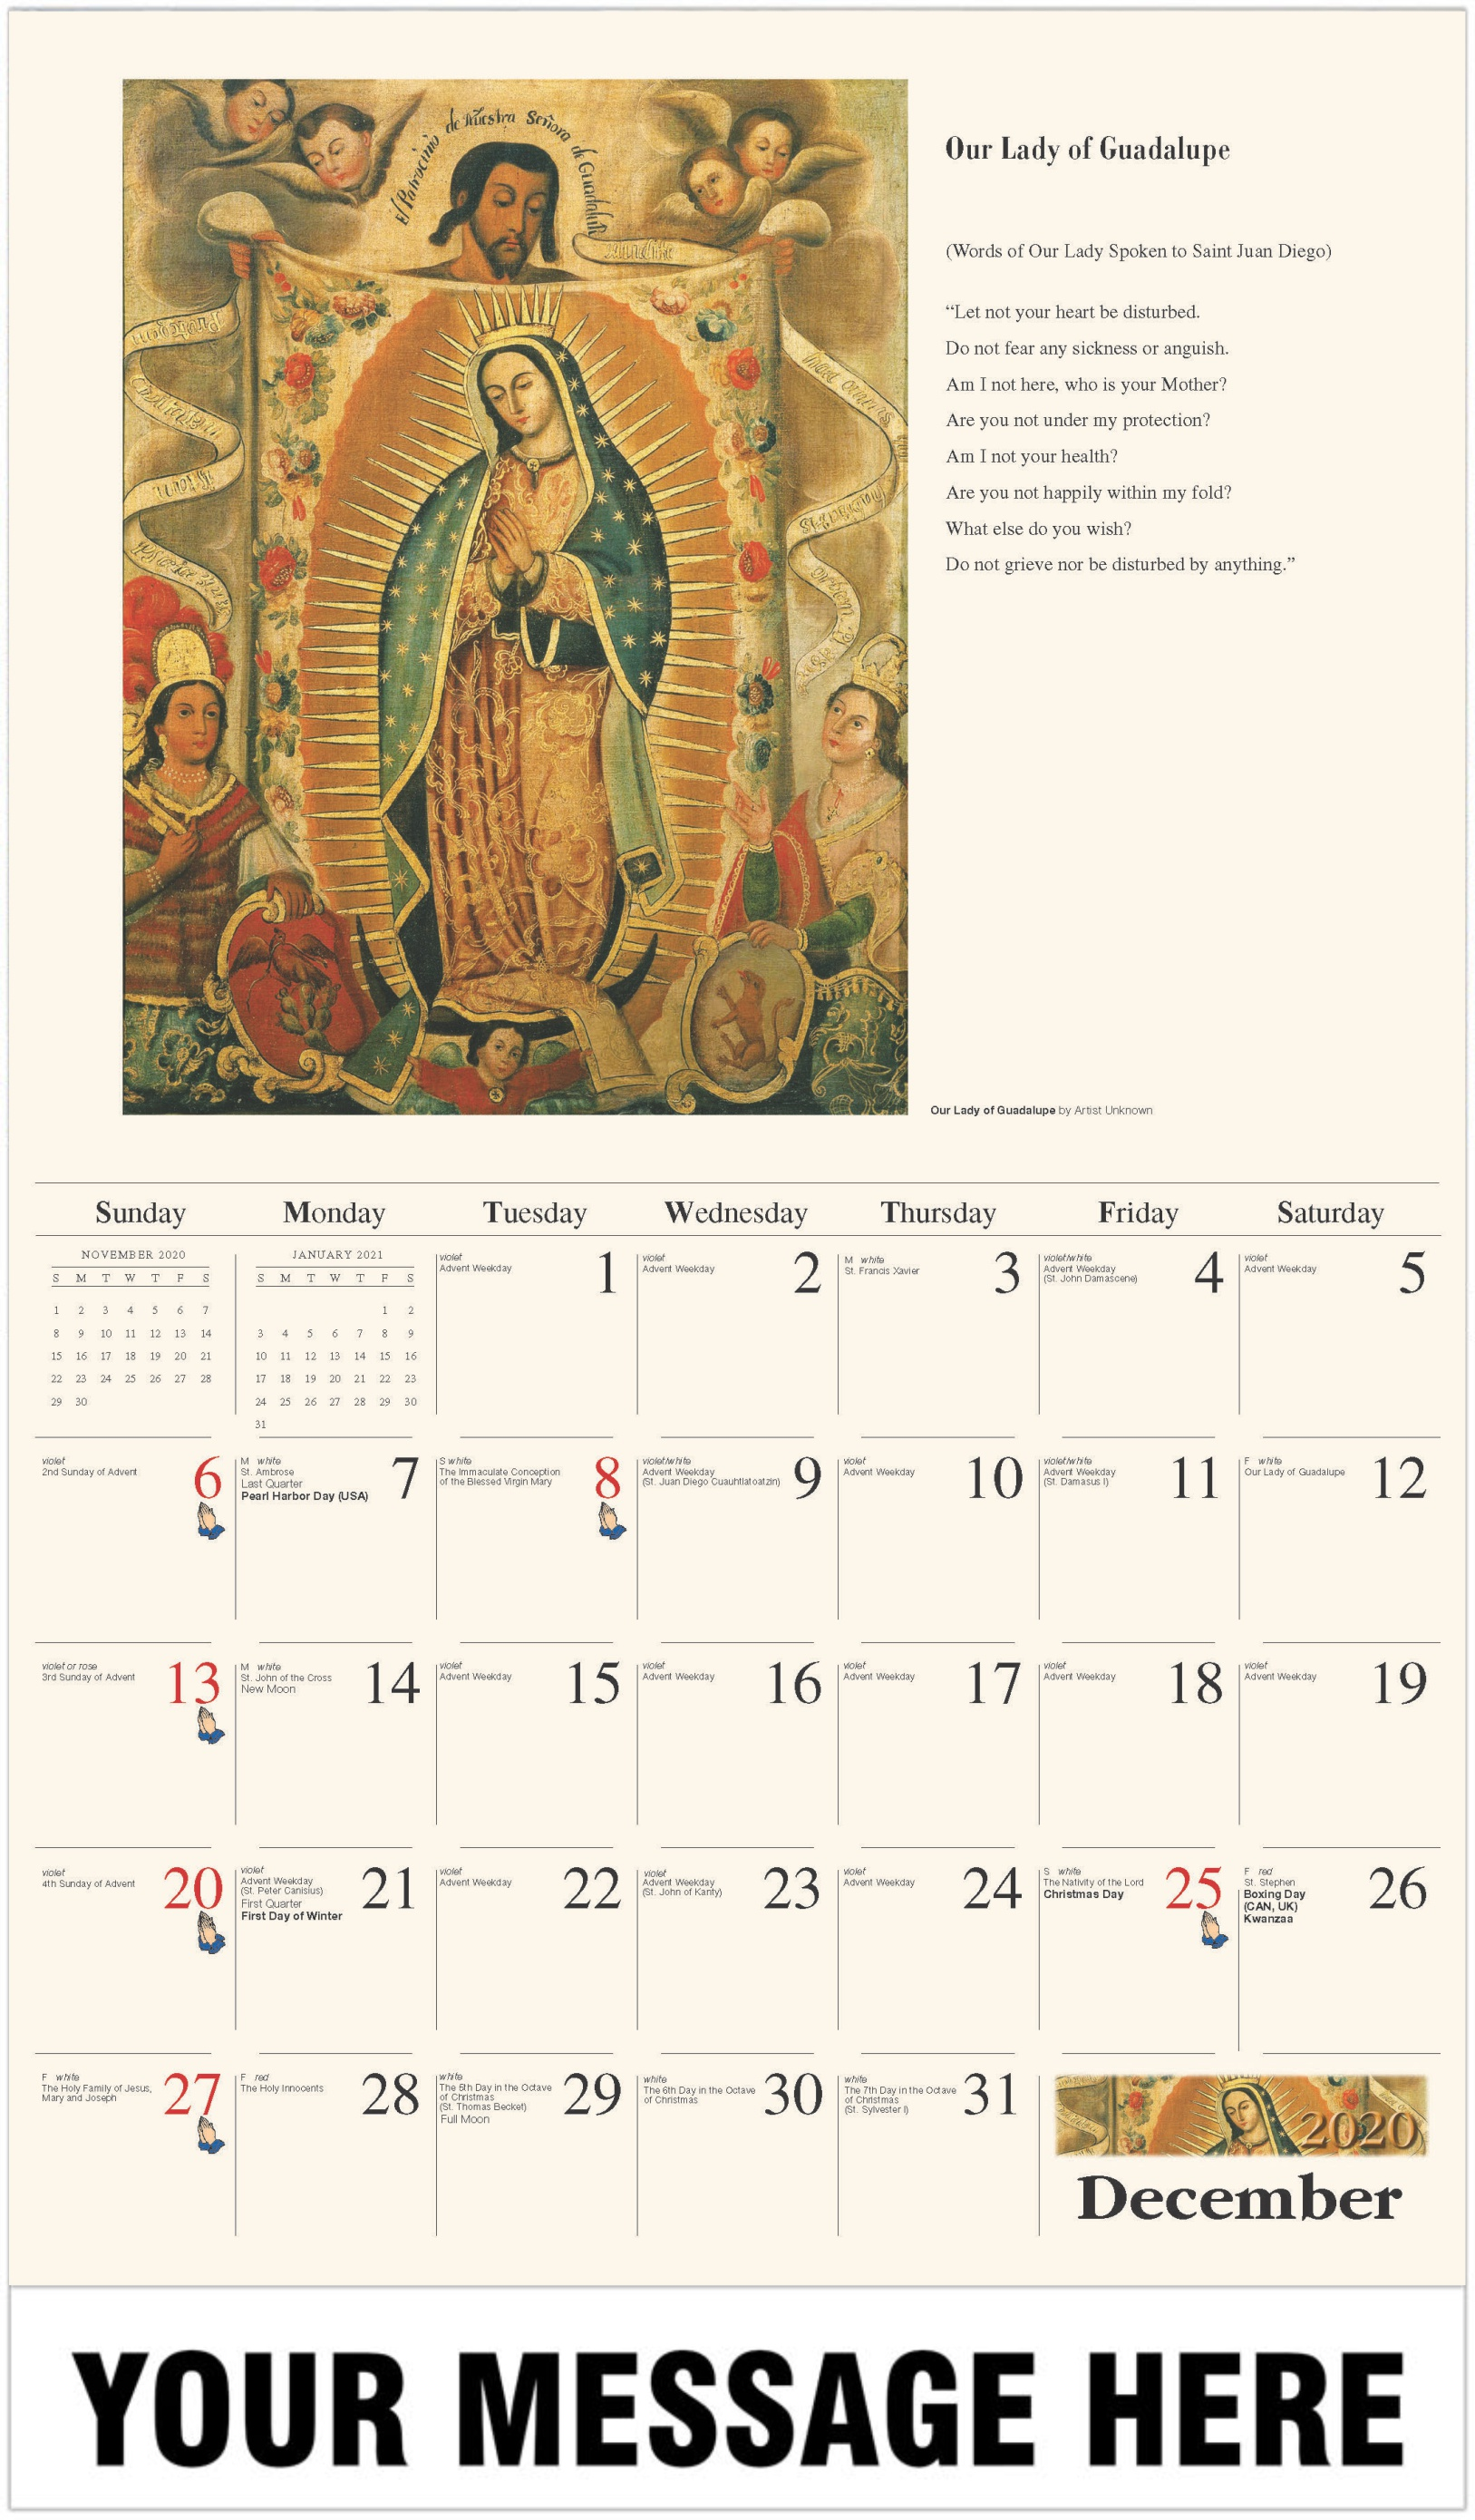 Our Lady of Guadalupe by Artist Unknown - December 2020 - Catholic Inspiration 2021 Promotional Calendar